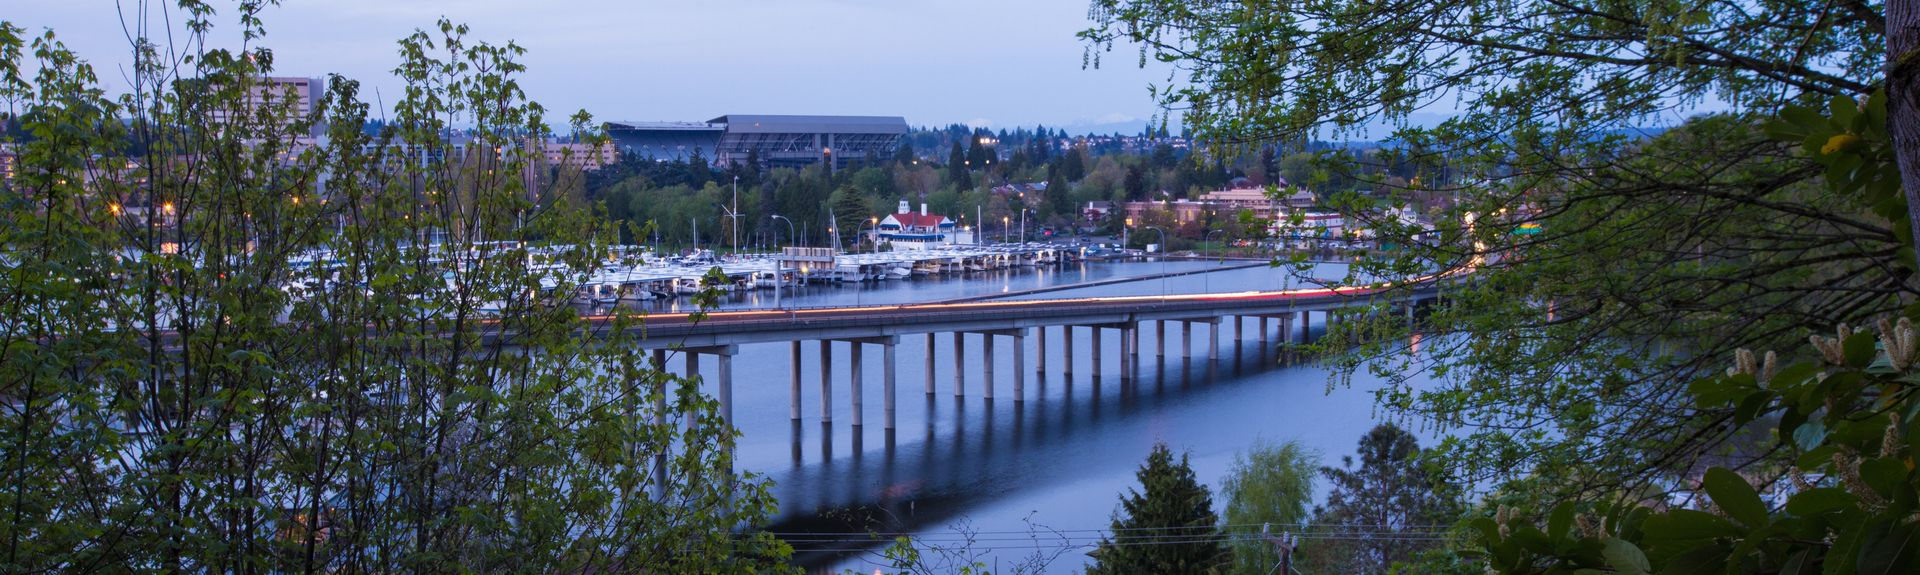 Greater Duwamish, Seattle, Tukwila, Washington, United States of America